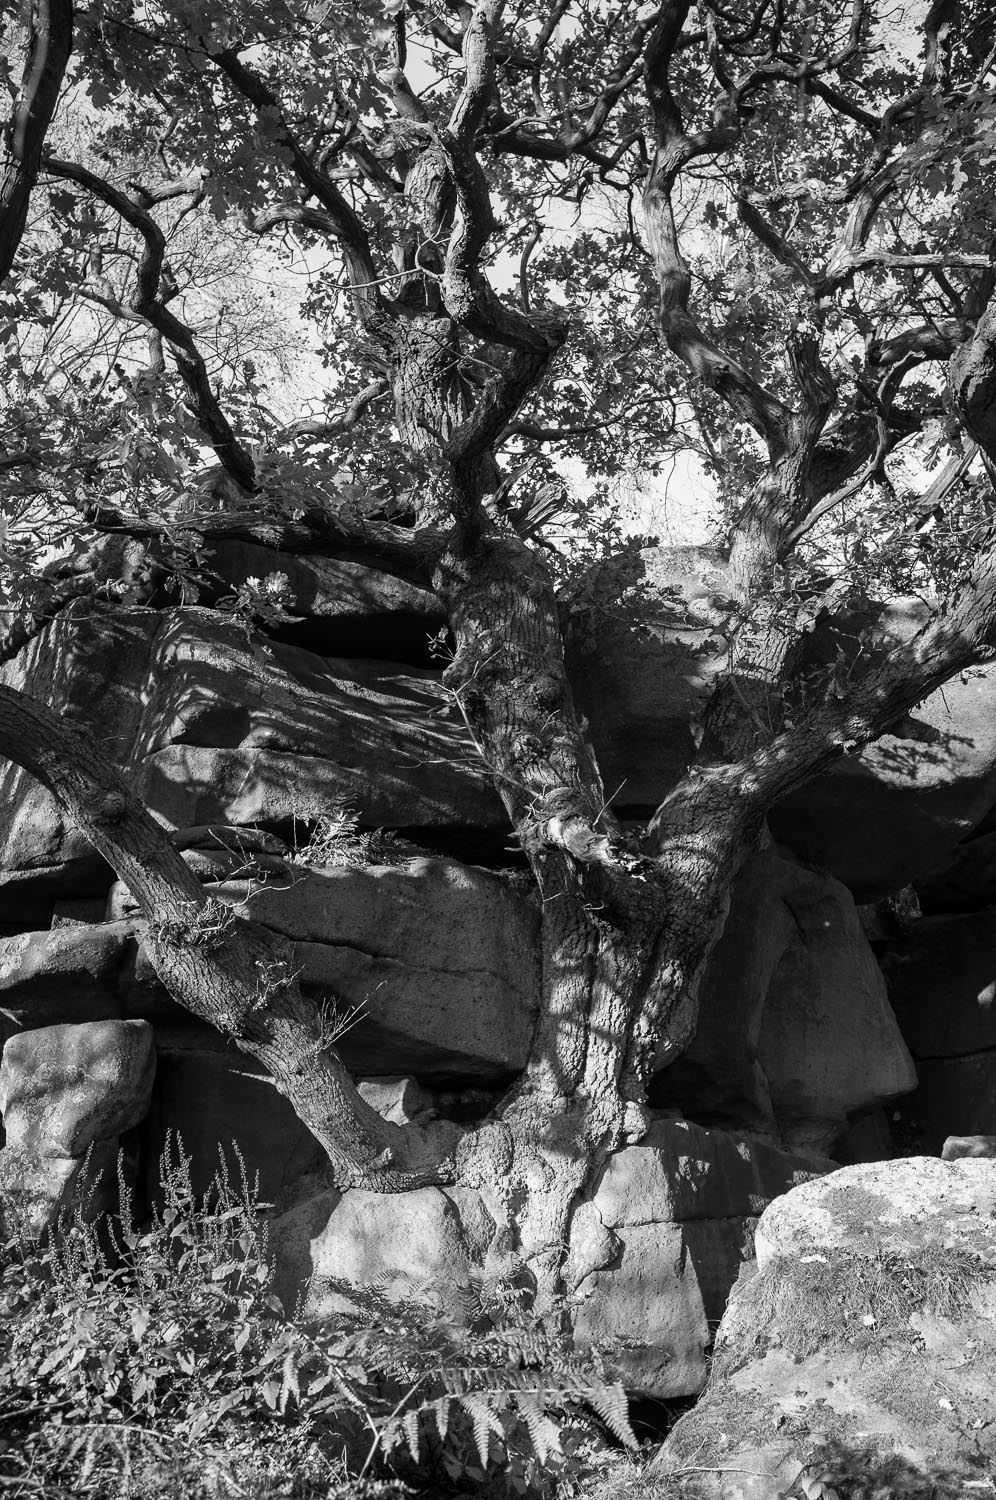 Oak from Tree - Black and White